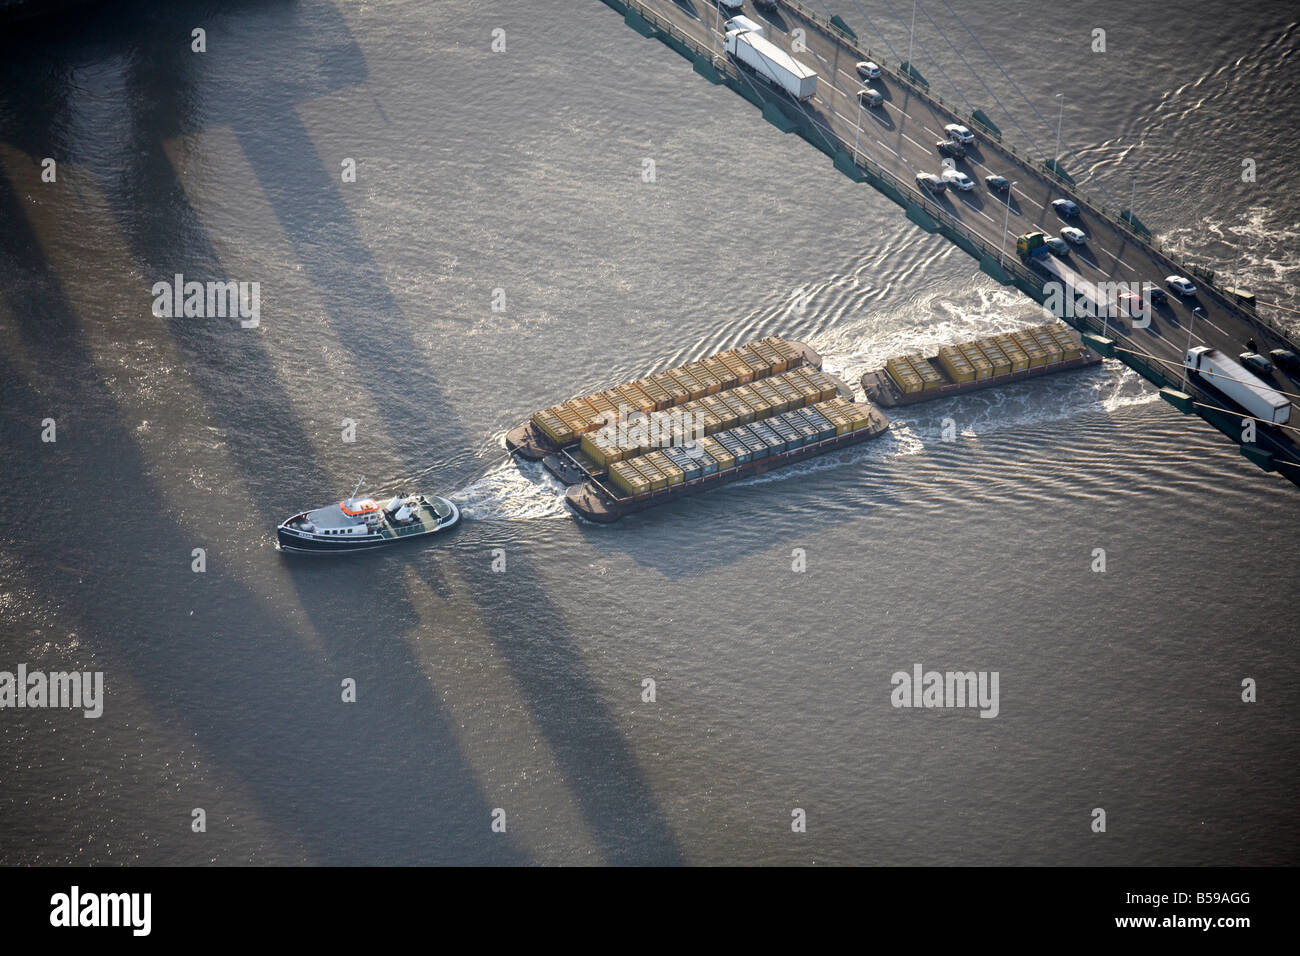 Aerial view south west of Queen Elizabeth II Bridge River Thames boat cargo water ripples Dartford London DA1 England - Stock Image